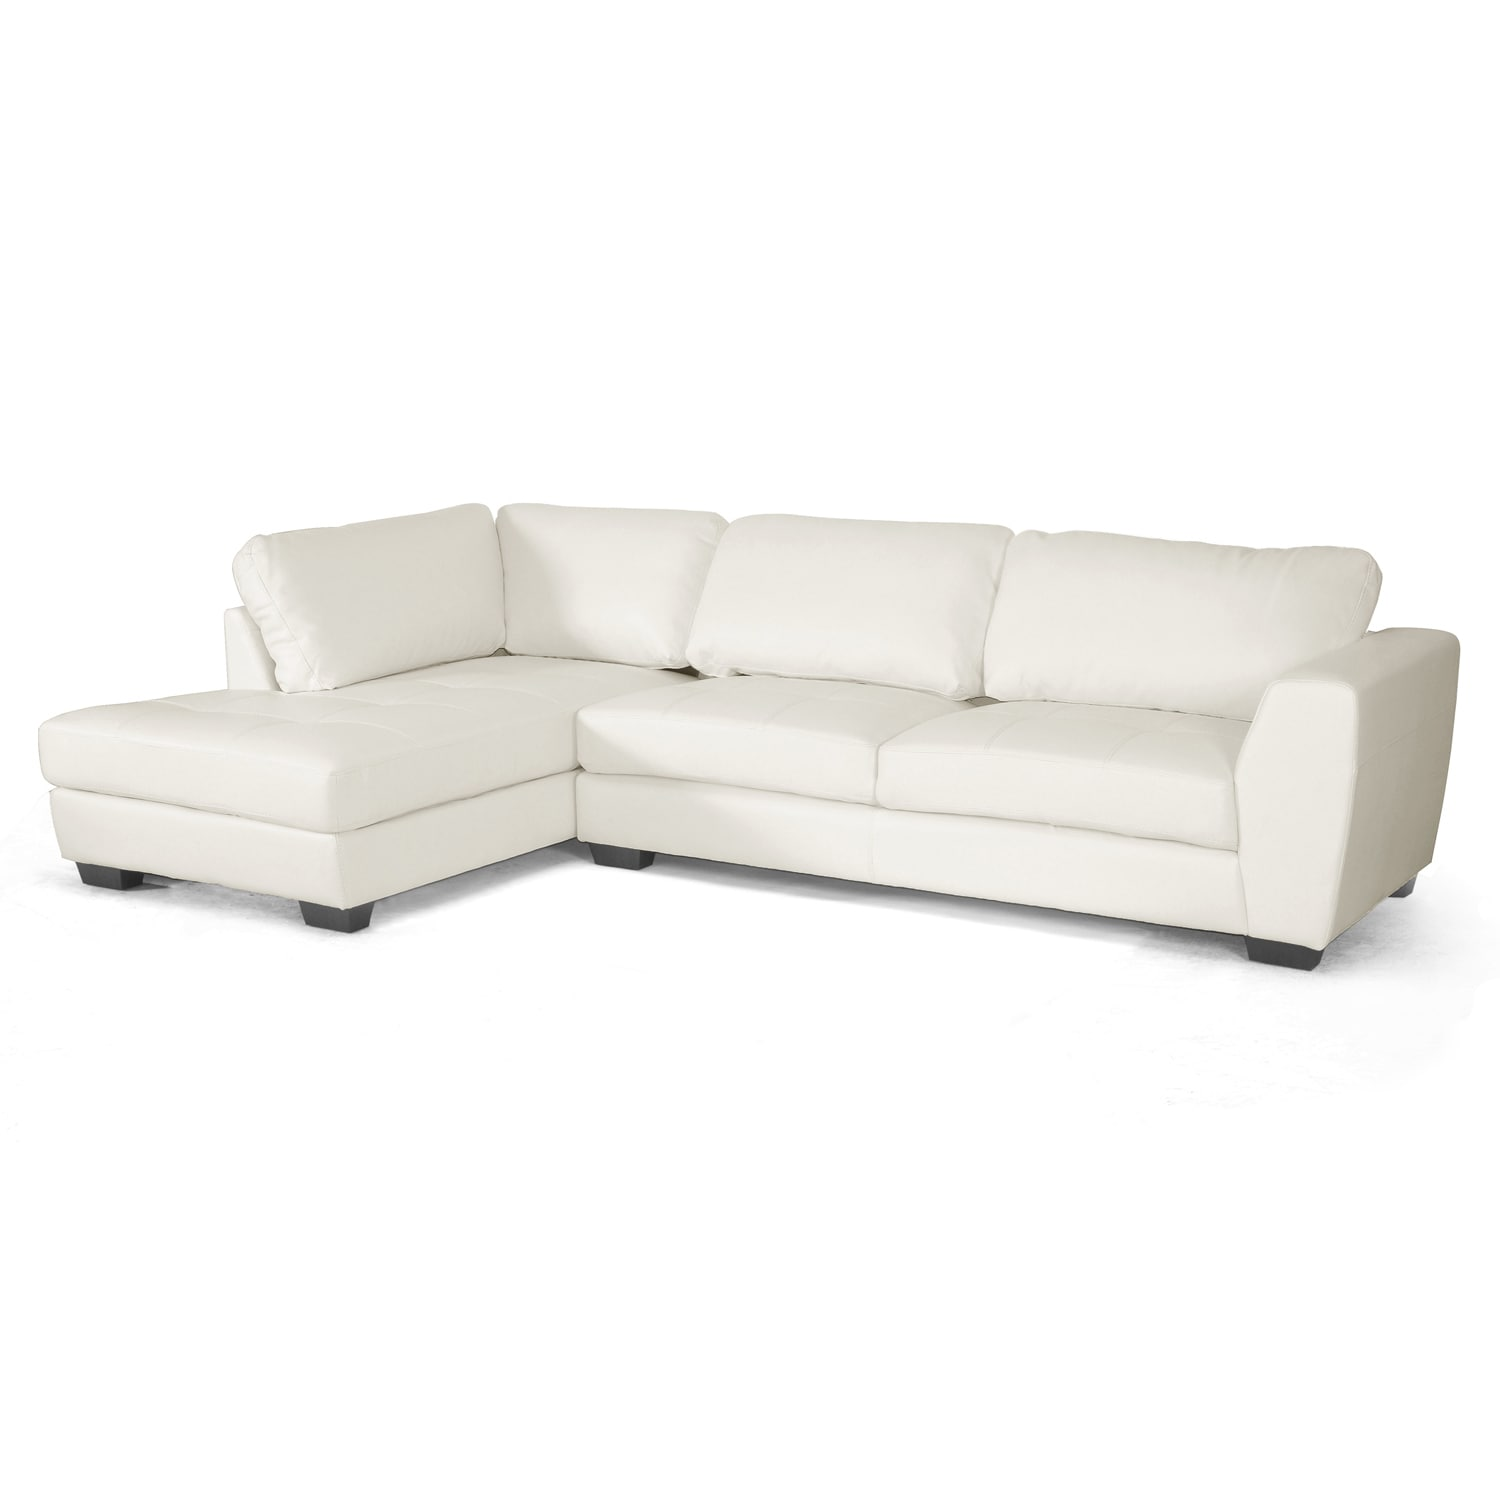 Orland white leather modern sectional sofa set with left for Leather sectional sofa with left facing chaise